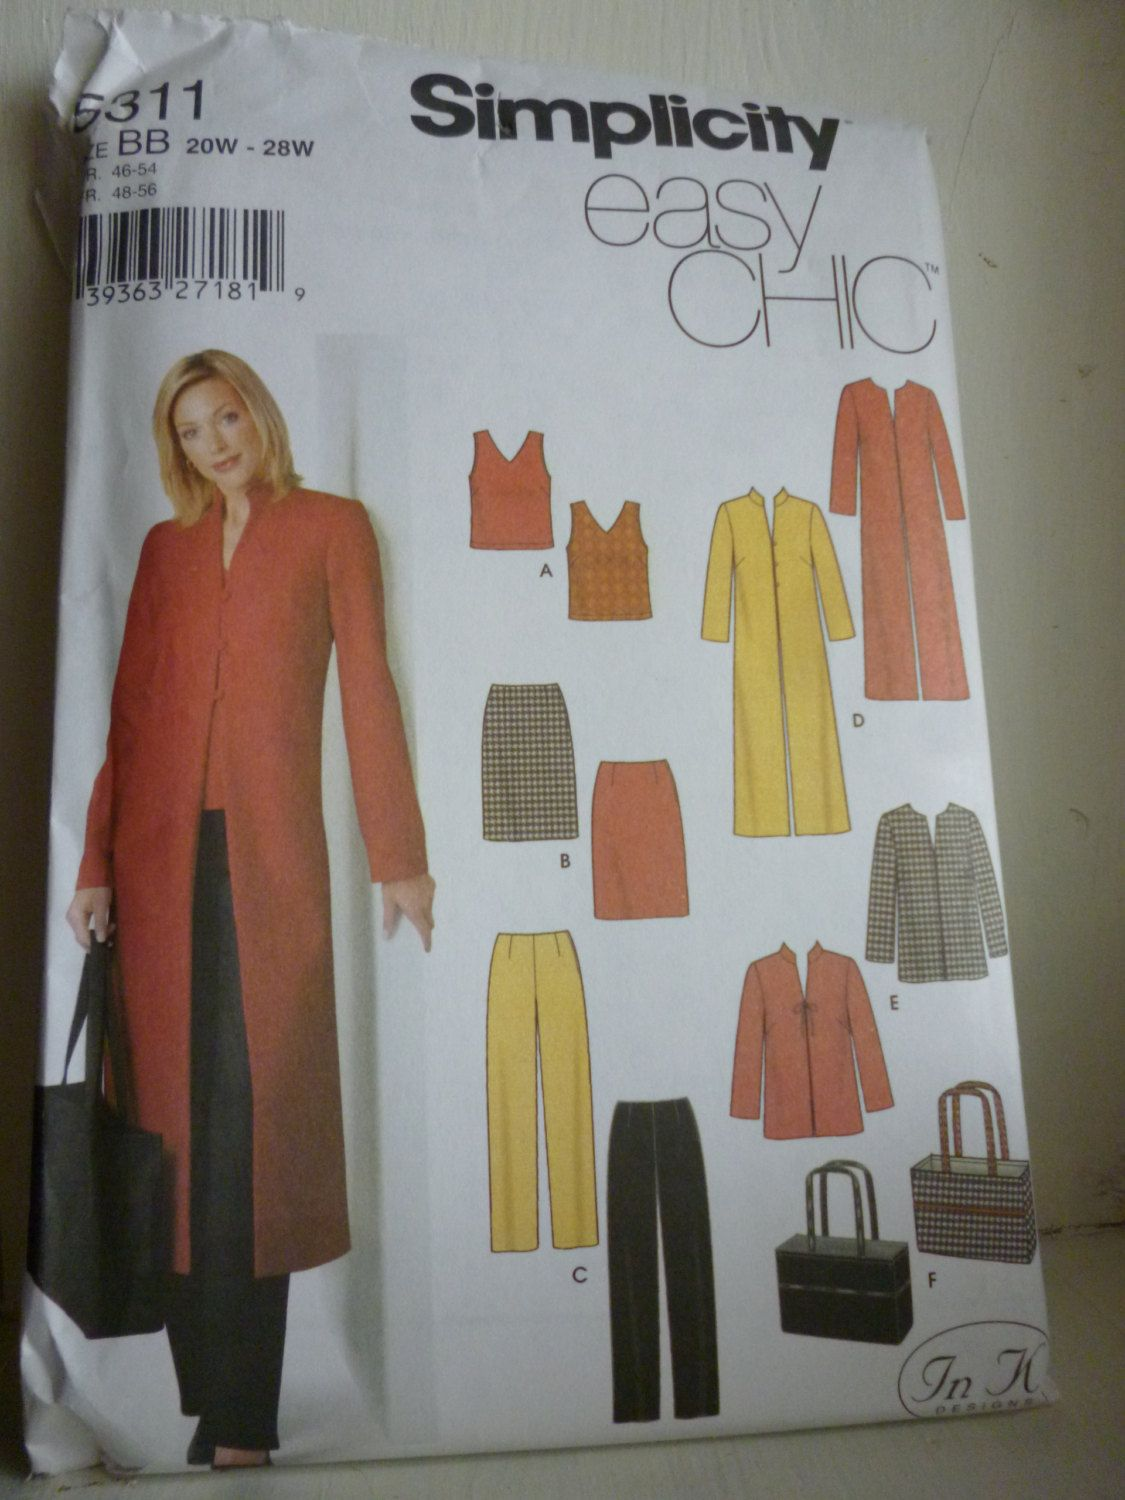 Simplicity 5311 Easy Chic Misses Coat or Jacket, Skirt, Top, Pants ...